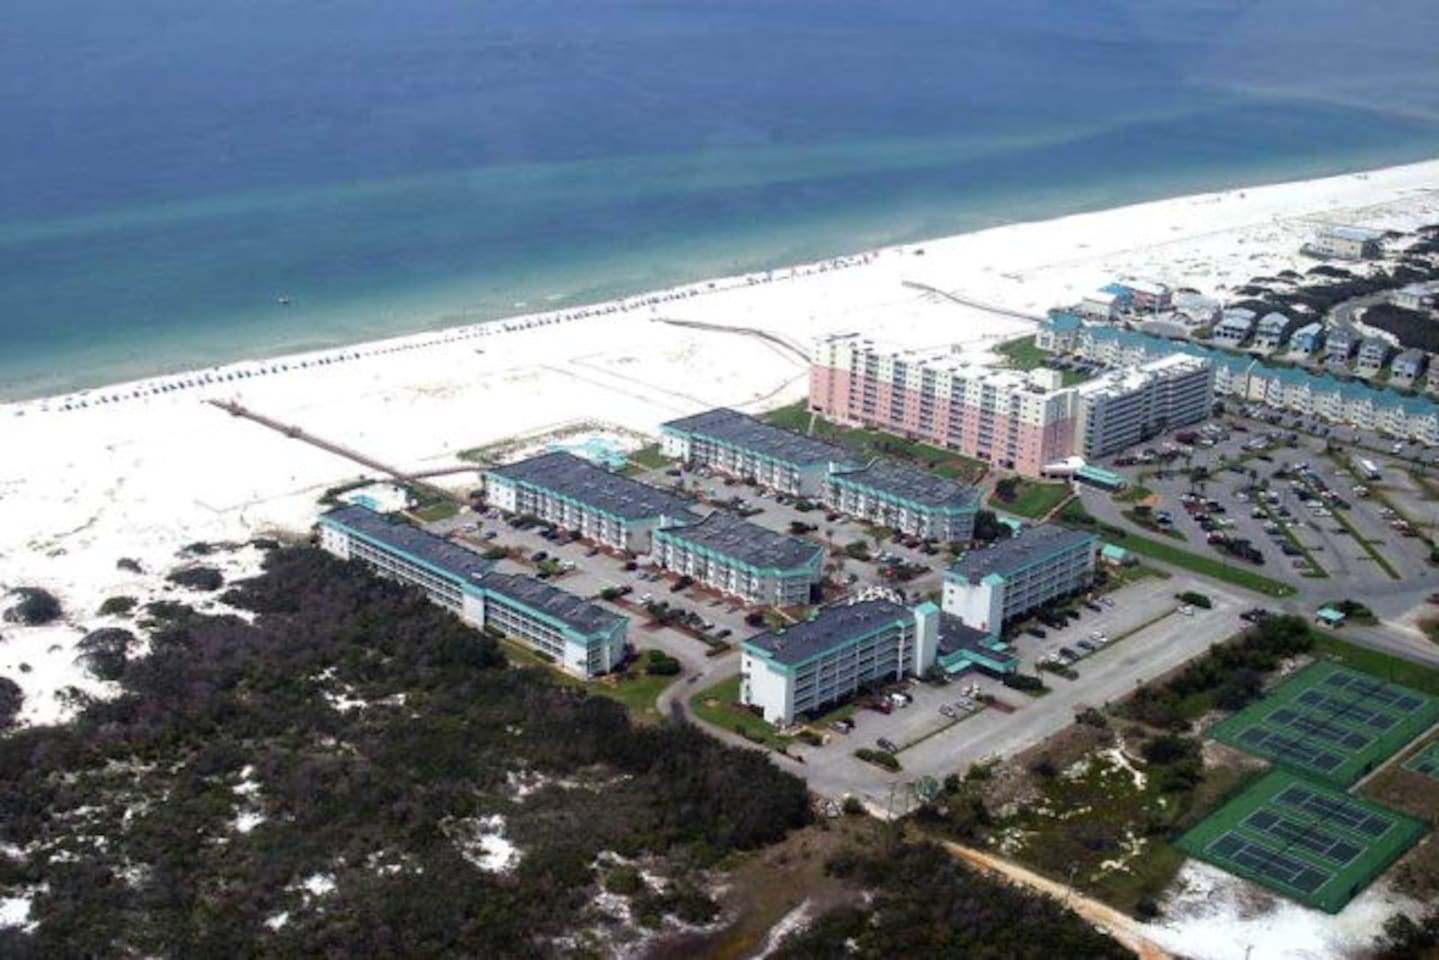 Overhead view of complex